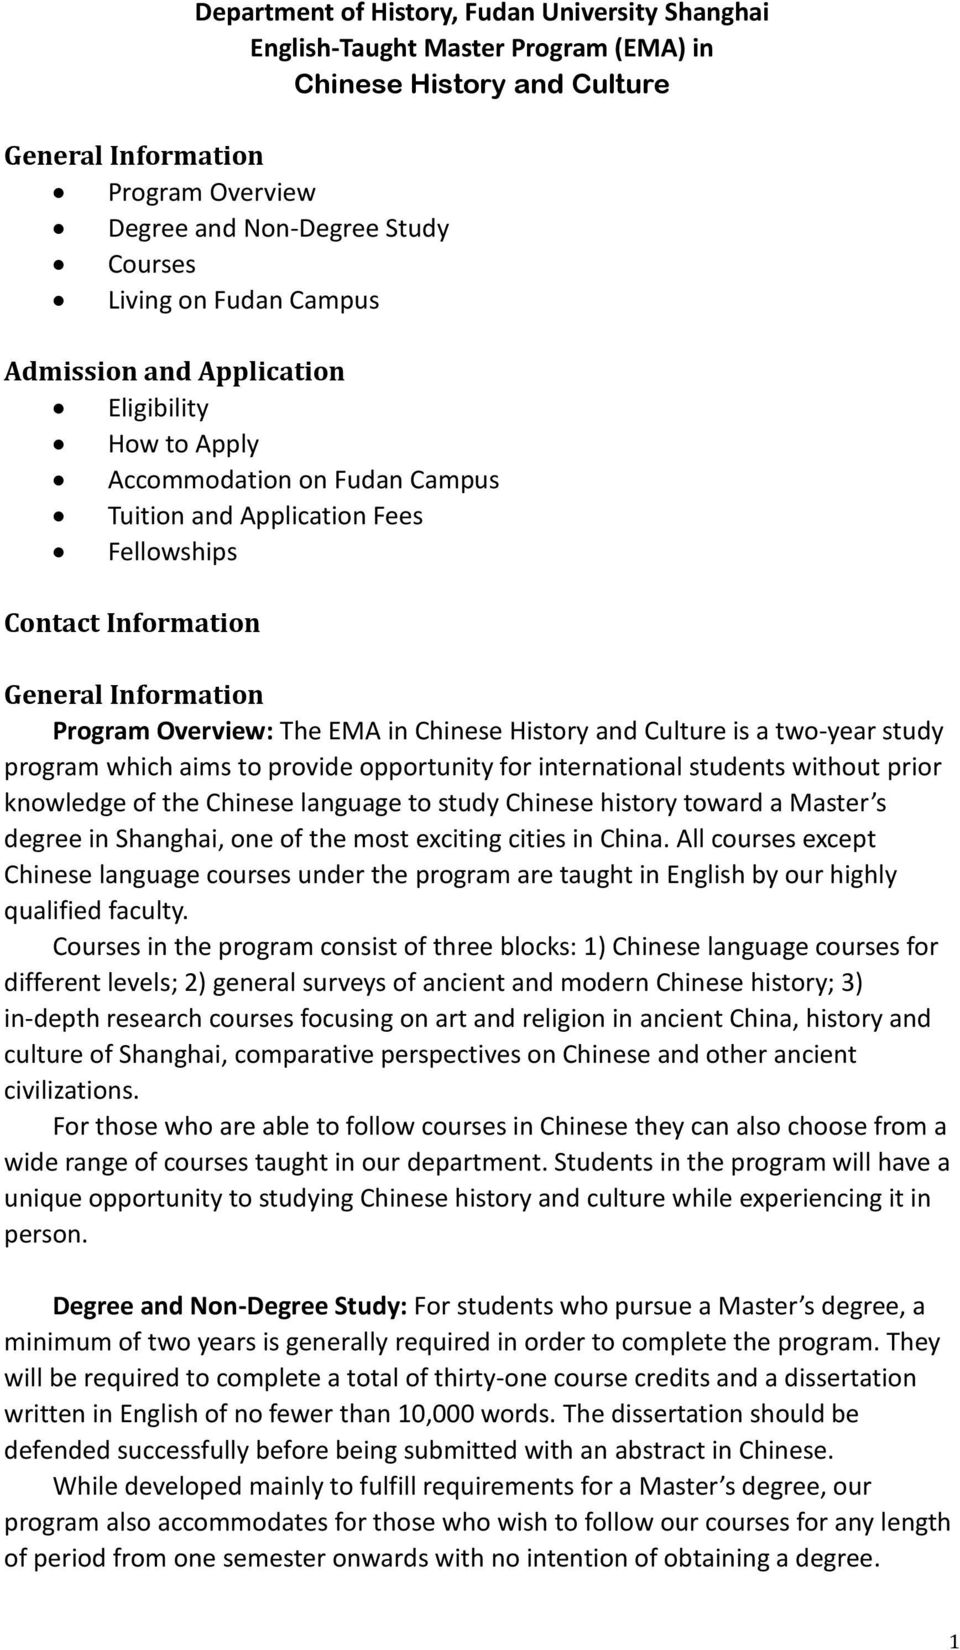 EMA in Chinese History and Culture is a two-year study program which aims to provide opportunity for international students without prior knowledge of the Chinese language to study Chinese history